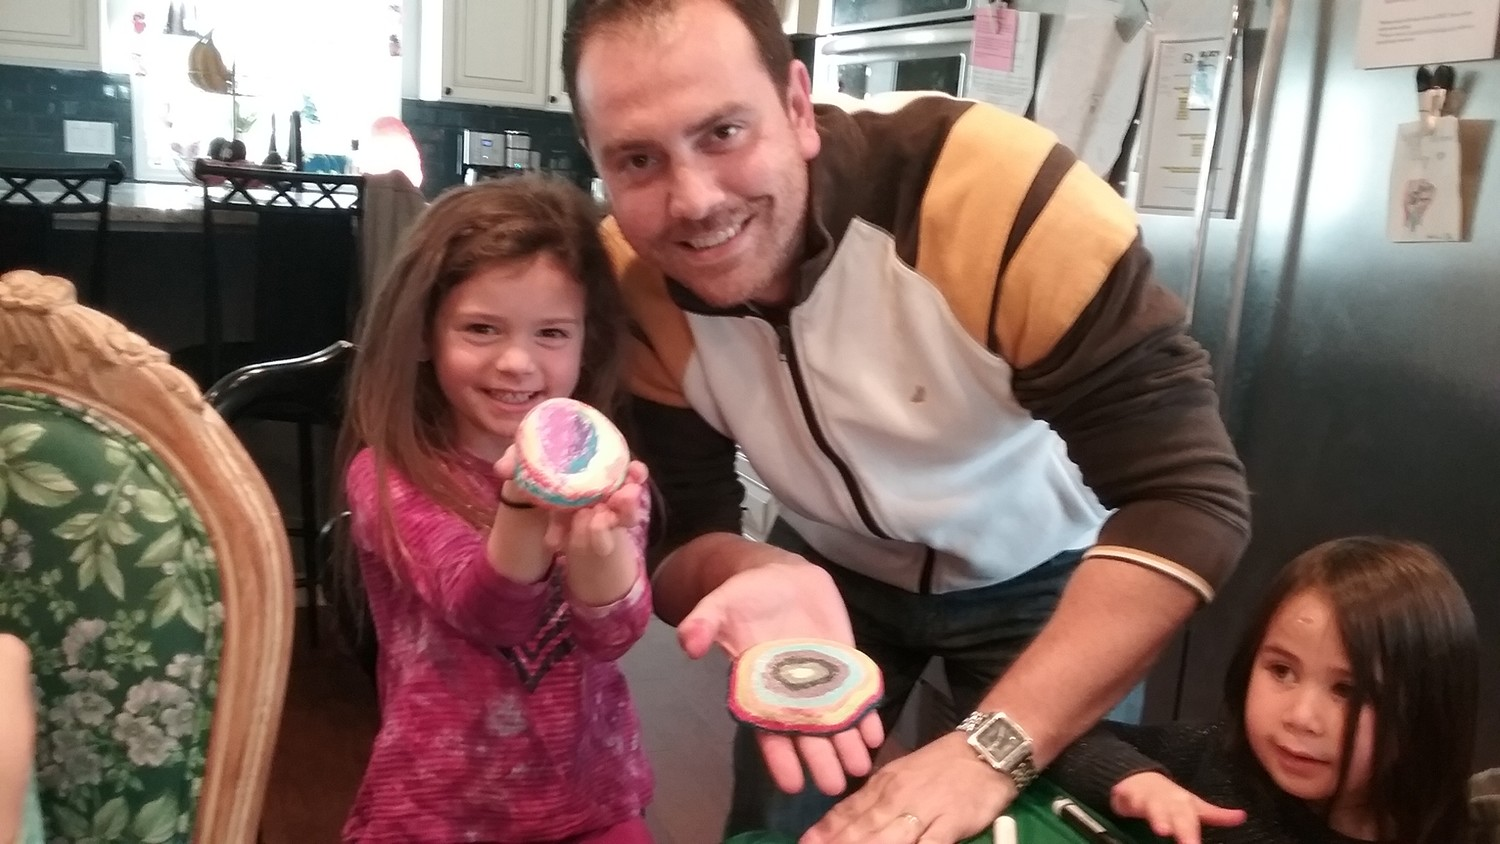 Brad Wofsy, his daughter Demi, left, and Samantha Adelman showed off the rocks they painted with bright colors in order to spread beauty, positivity and community around Oceanside.